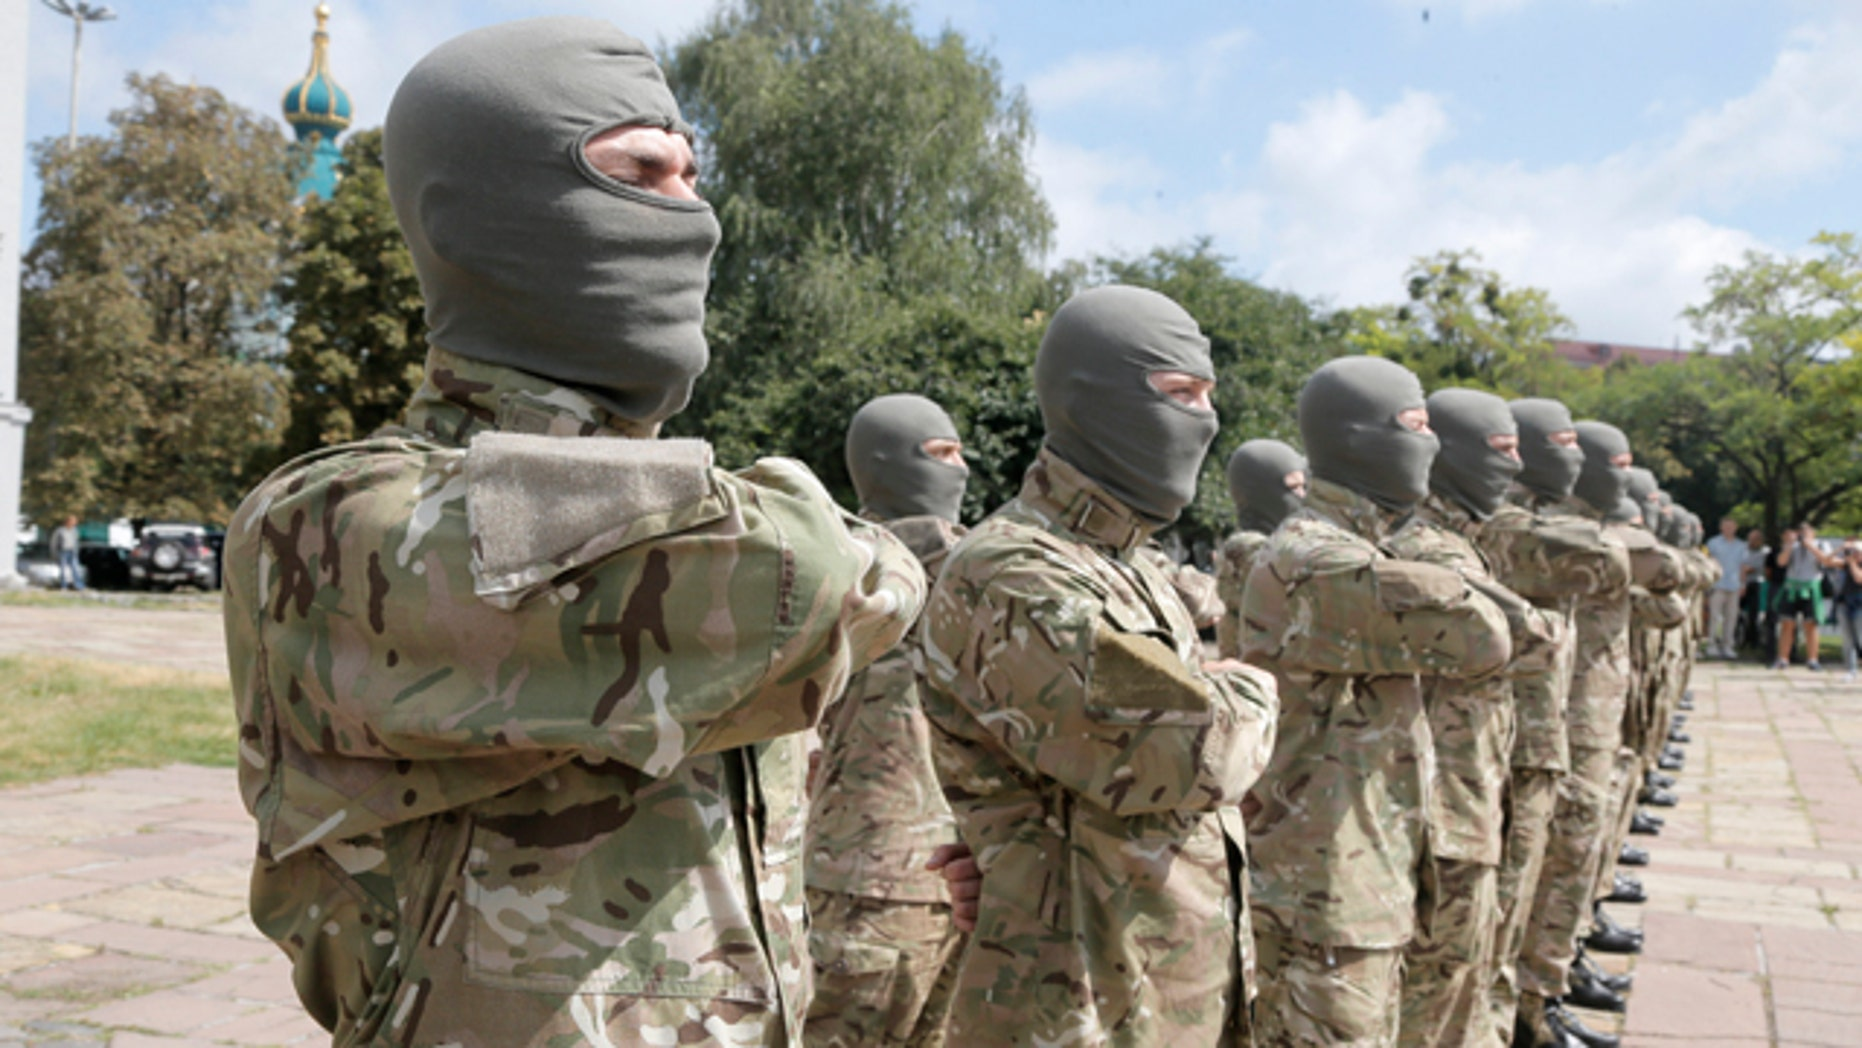 August 17, 2014: Volunteers take an oath of allegiance to Ukraine, before being sent to the eastern part of Ukraine to join the ranks of special battalion 'Azov' fighting against pro-Russian separatists. (AP Photo/Efrem Lukatsky)